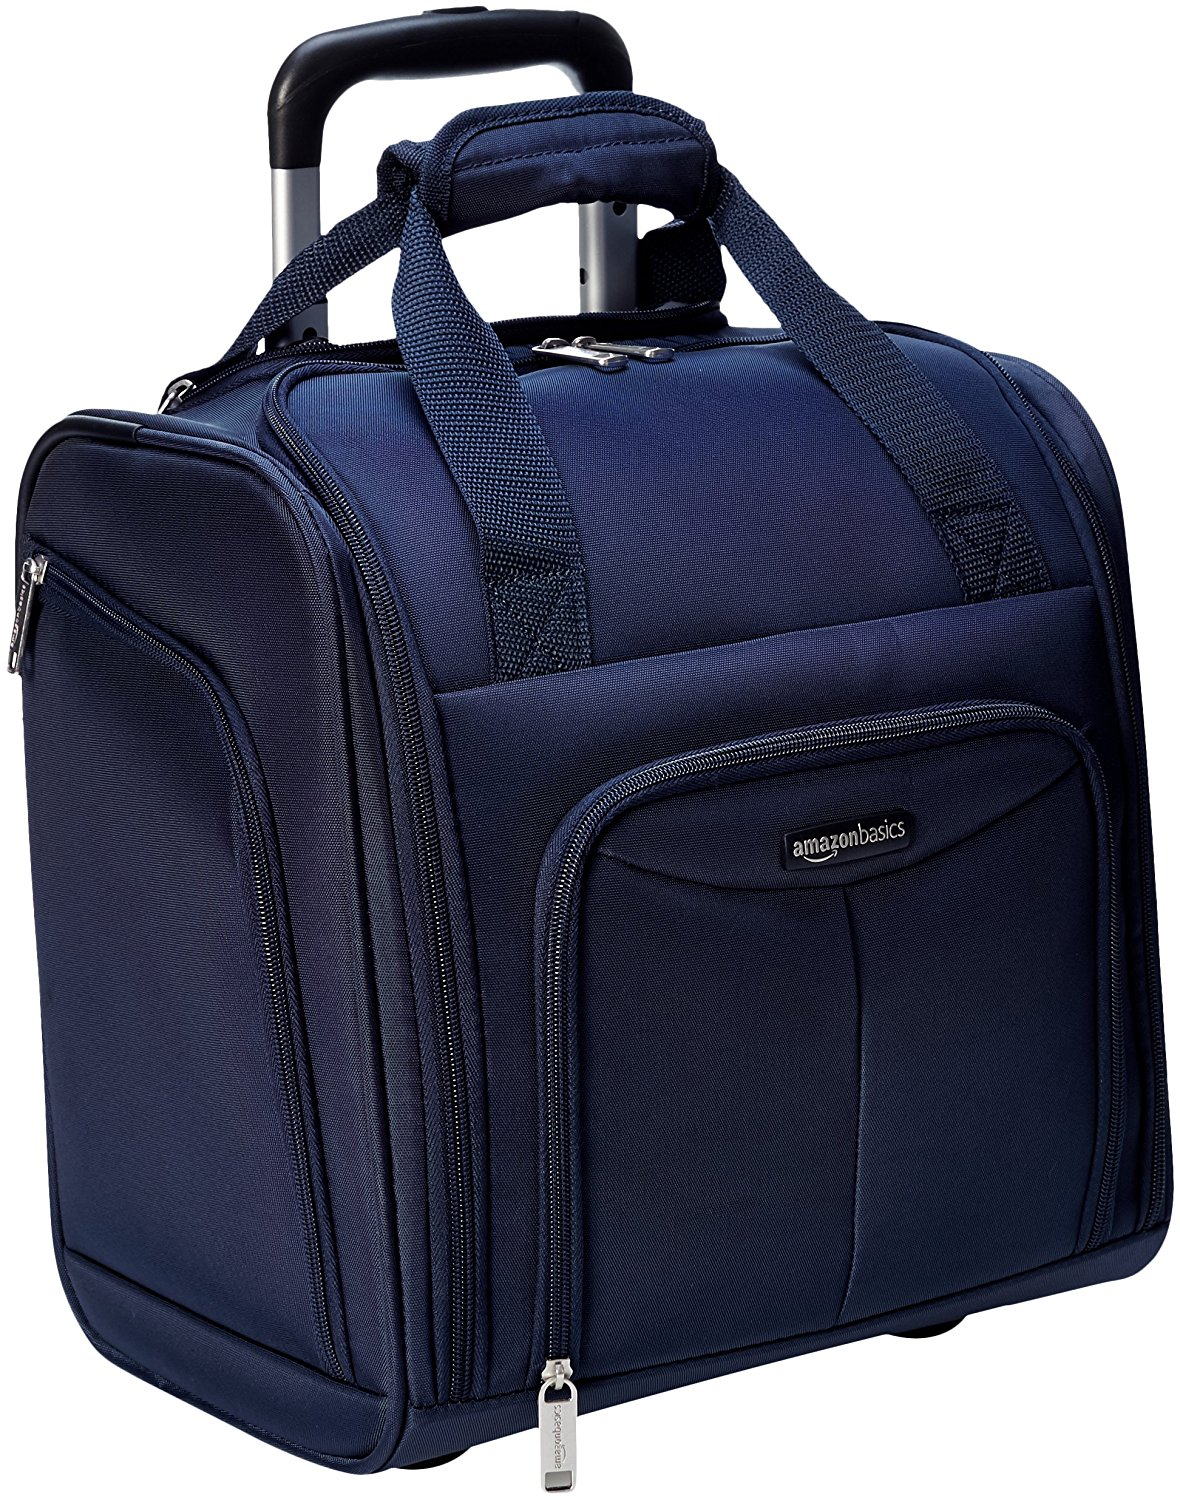 d9c227a7c6 Six Best Allegiant Air Personal Item Bags - The Jetsetter s Guide